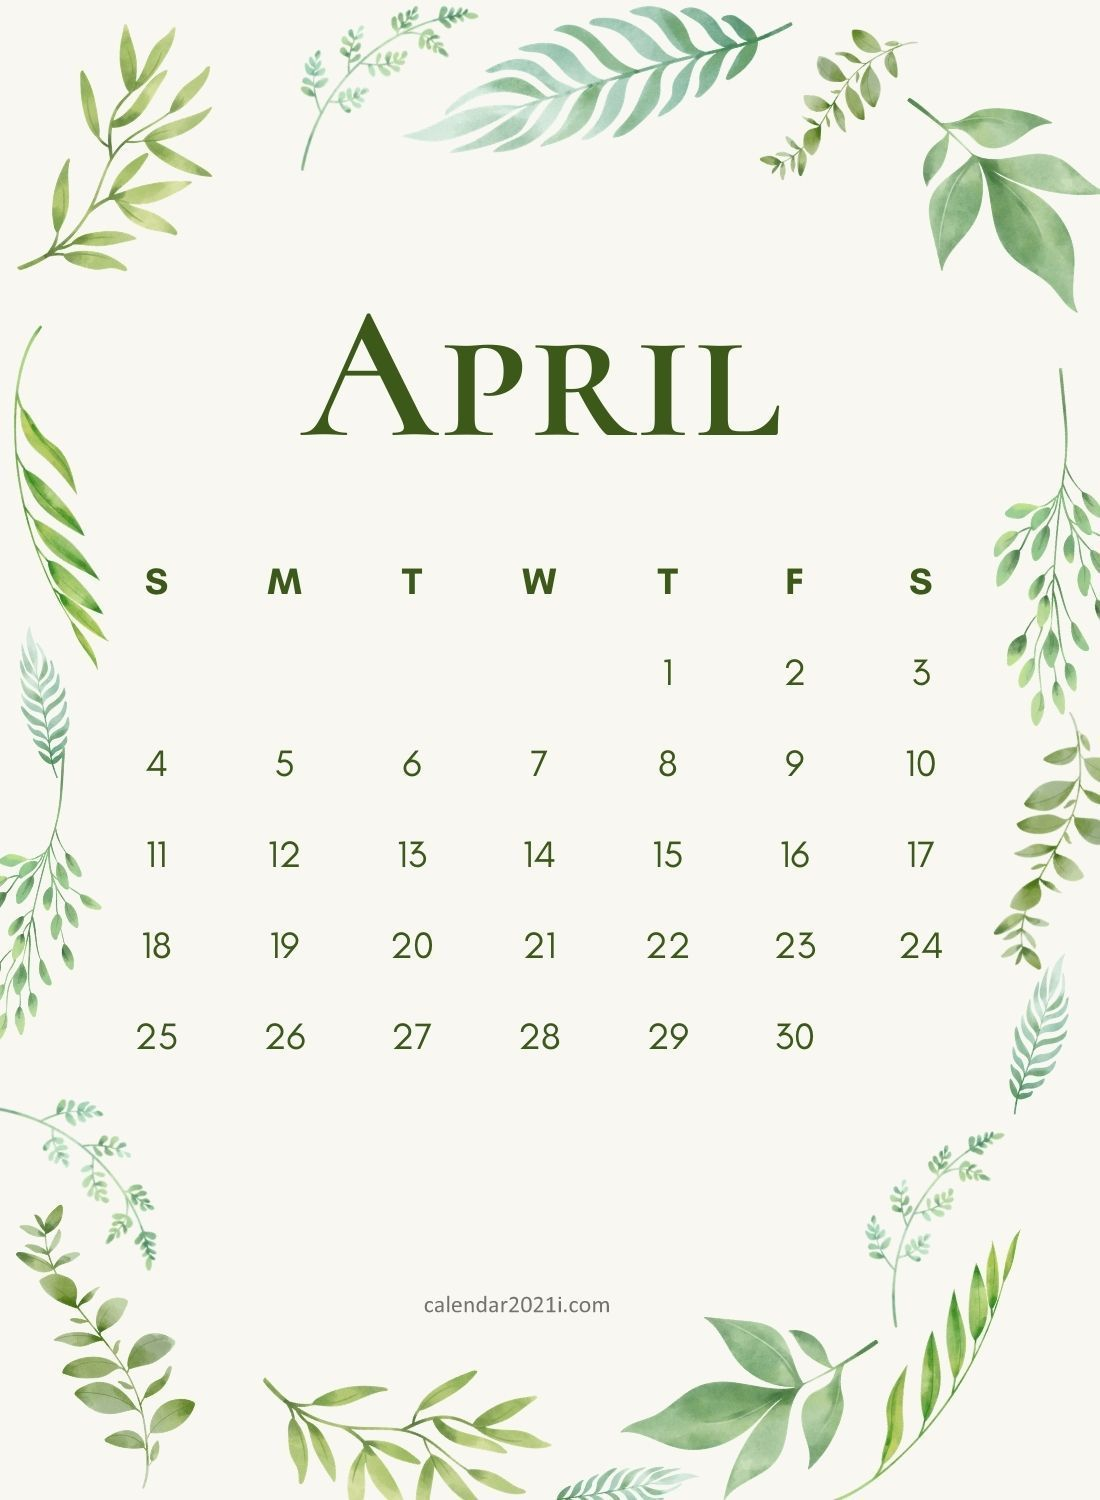 April 2021 Wall Calendar printable template download for House and